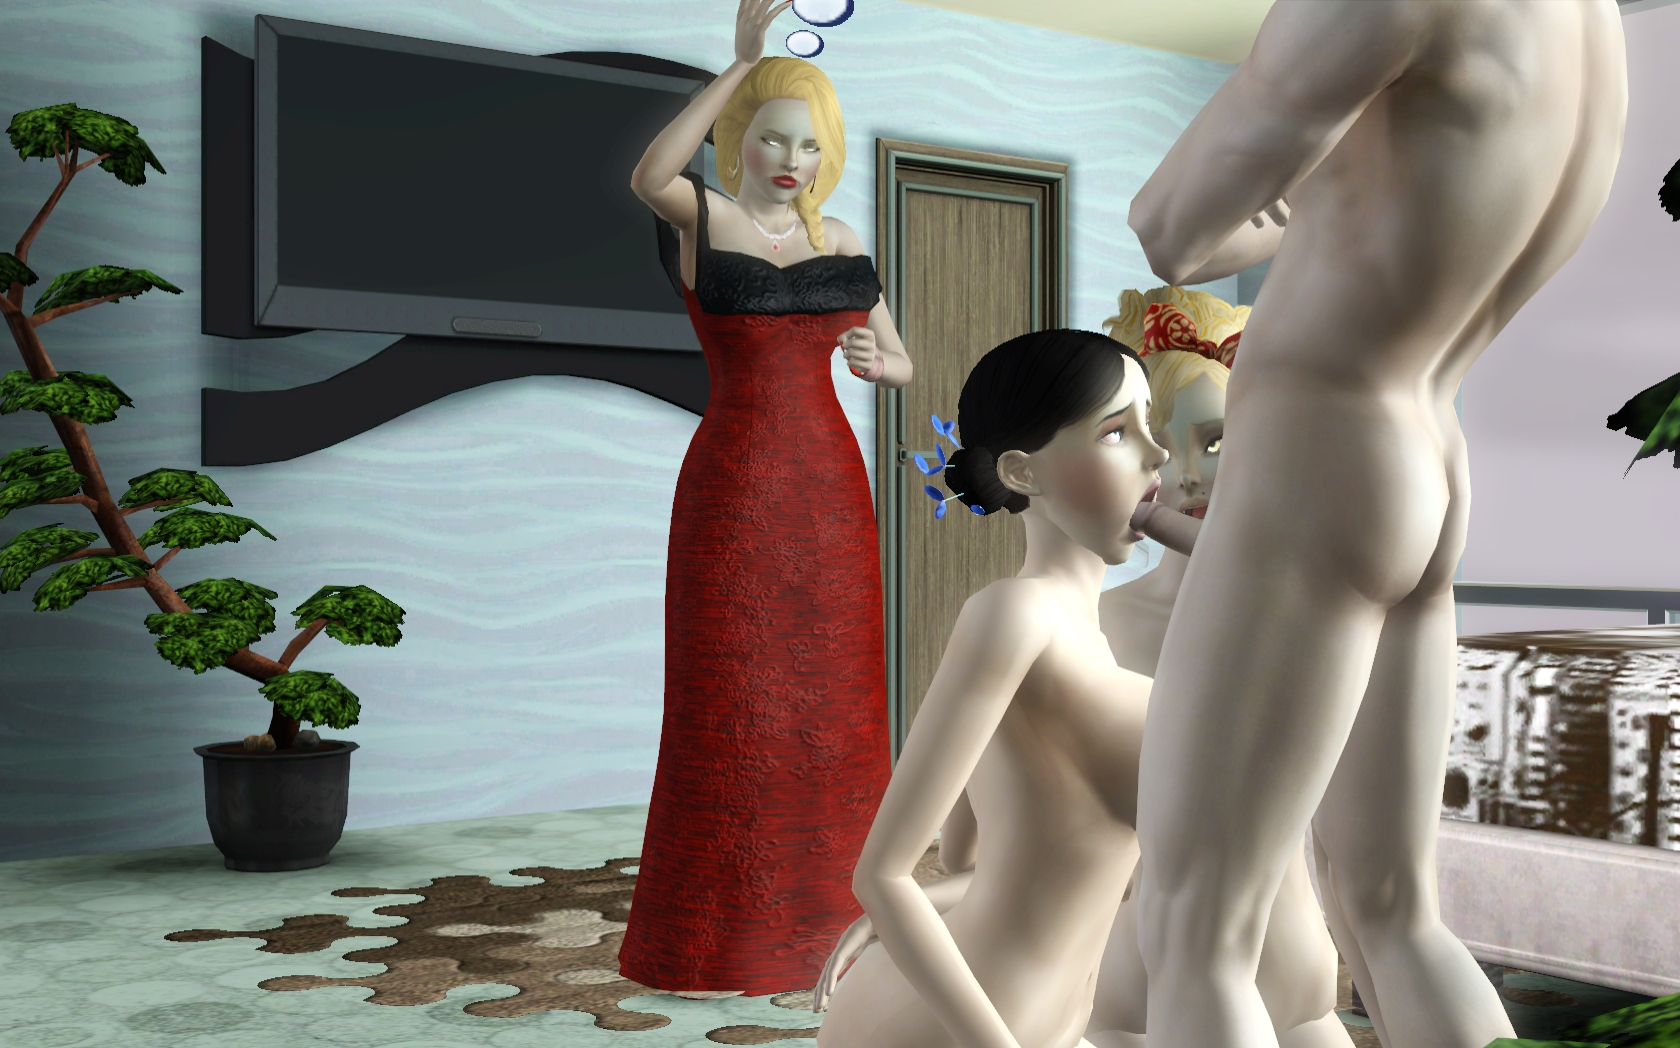 Free sims 2 sex onjects sexy videos